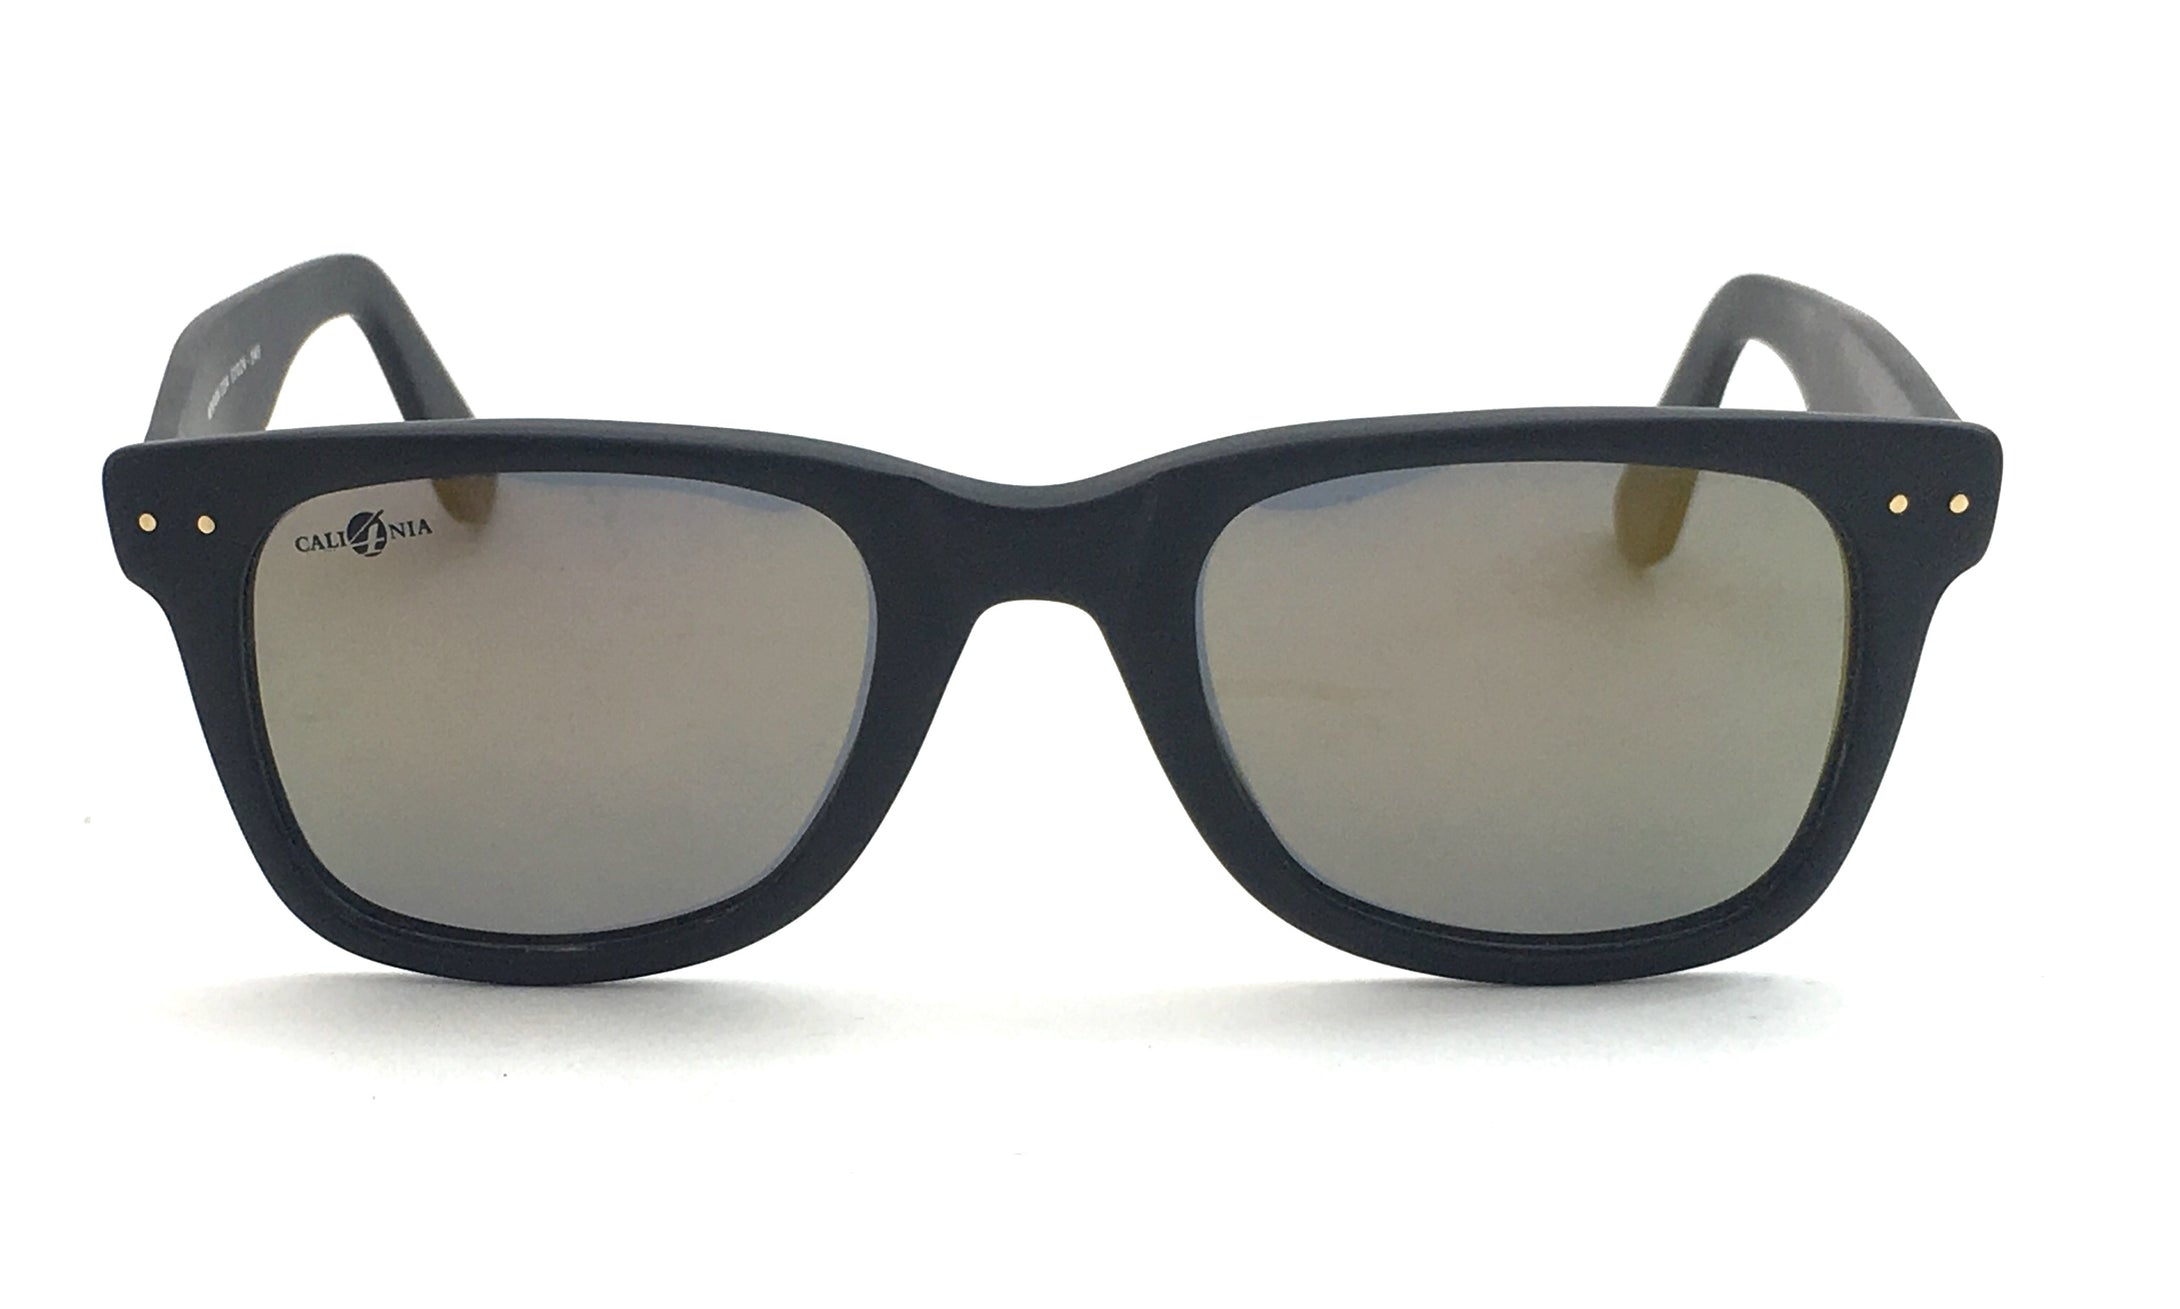 Cali4nia Wayfarer 4th Genration polorized Sunglasses Montara 3234